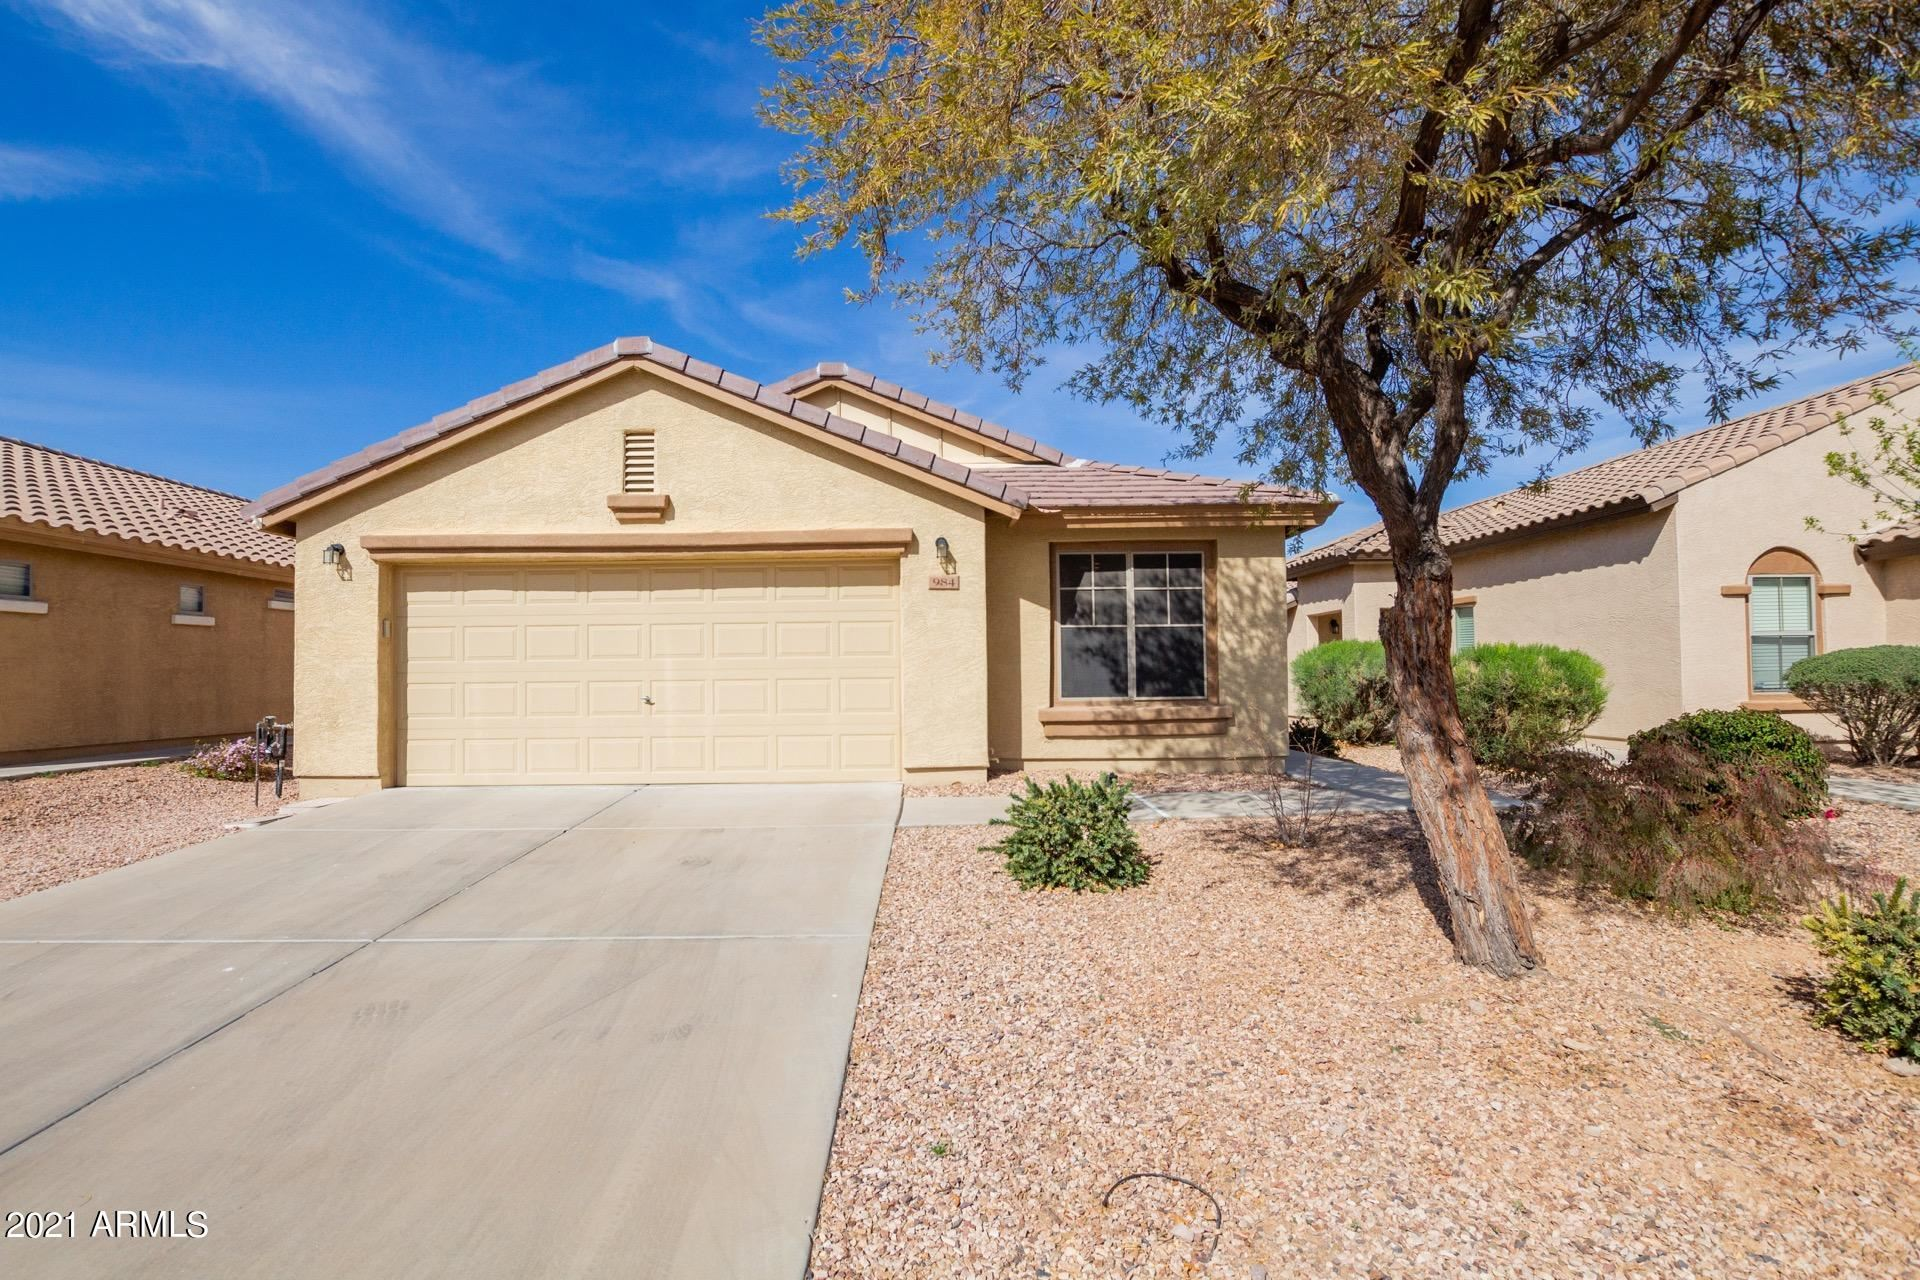 Photo of 984 W DESERT HILLS Drive, San Tan Valley, AZ 85143 (MLS # 6200109)